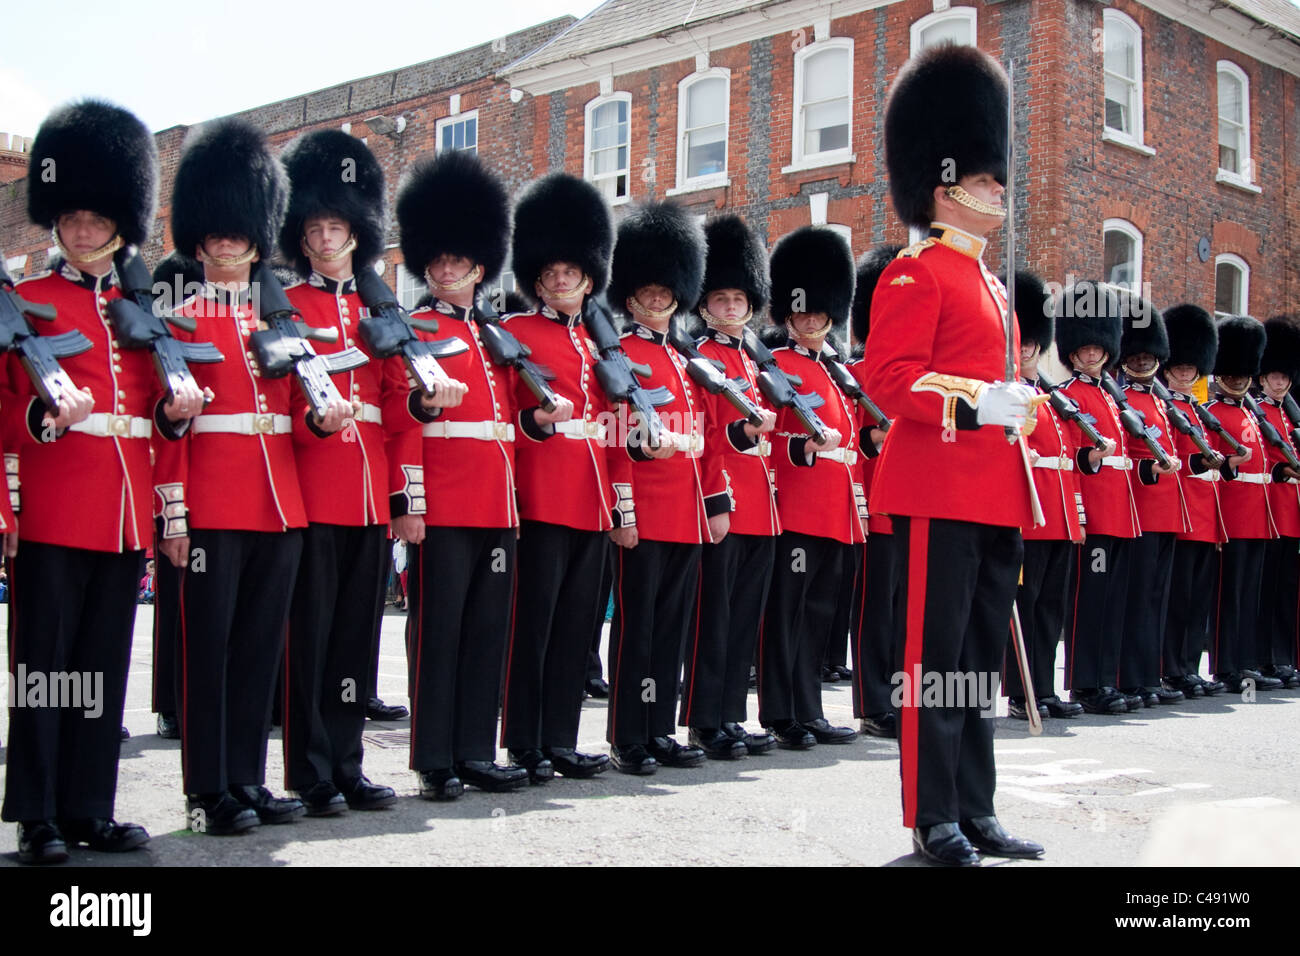 The 1st Battalion, Scots Guards perform a 'right dress'. - Stock Image